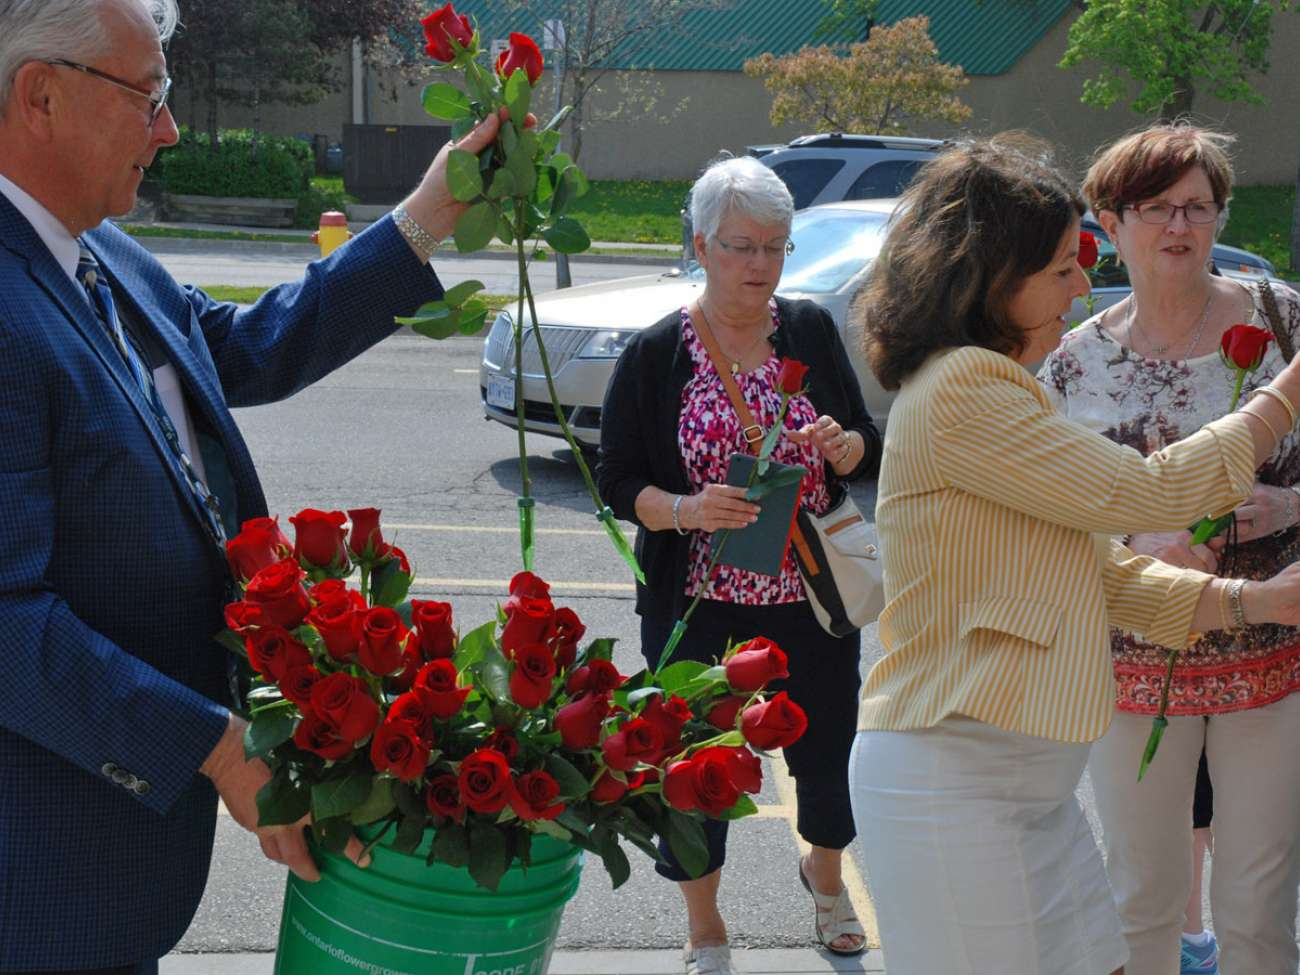 Malcolm Maxwell and Judy Linton provide roses to each of the tour participants